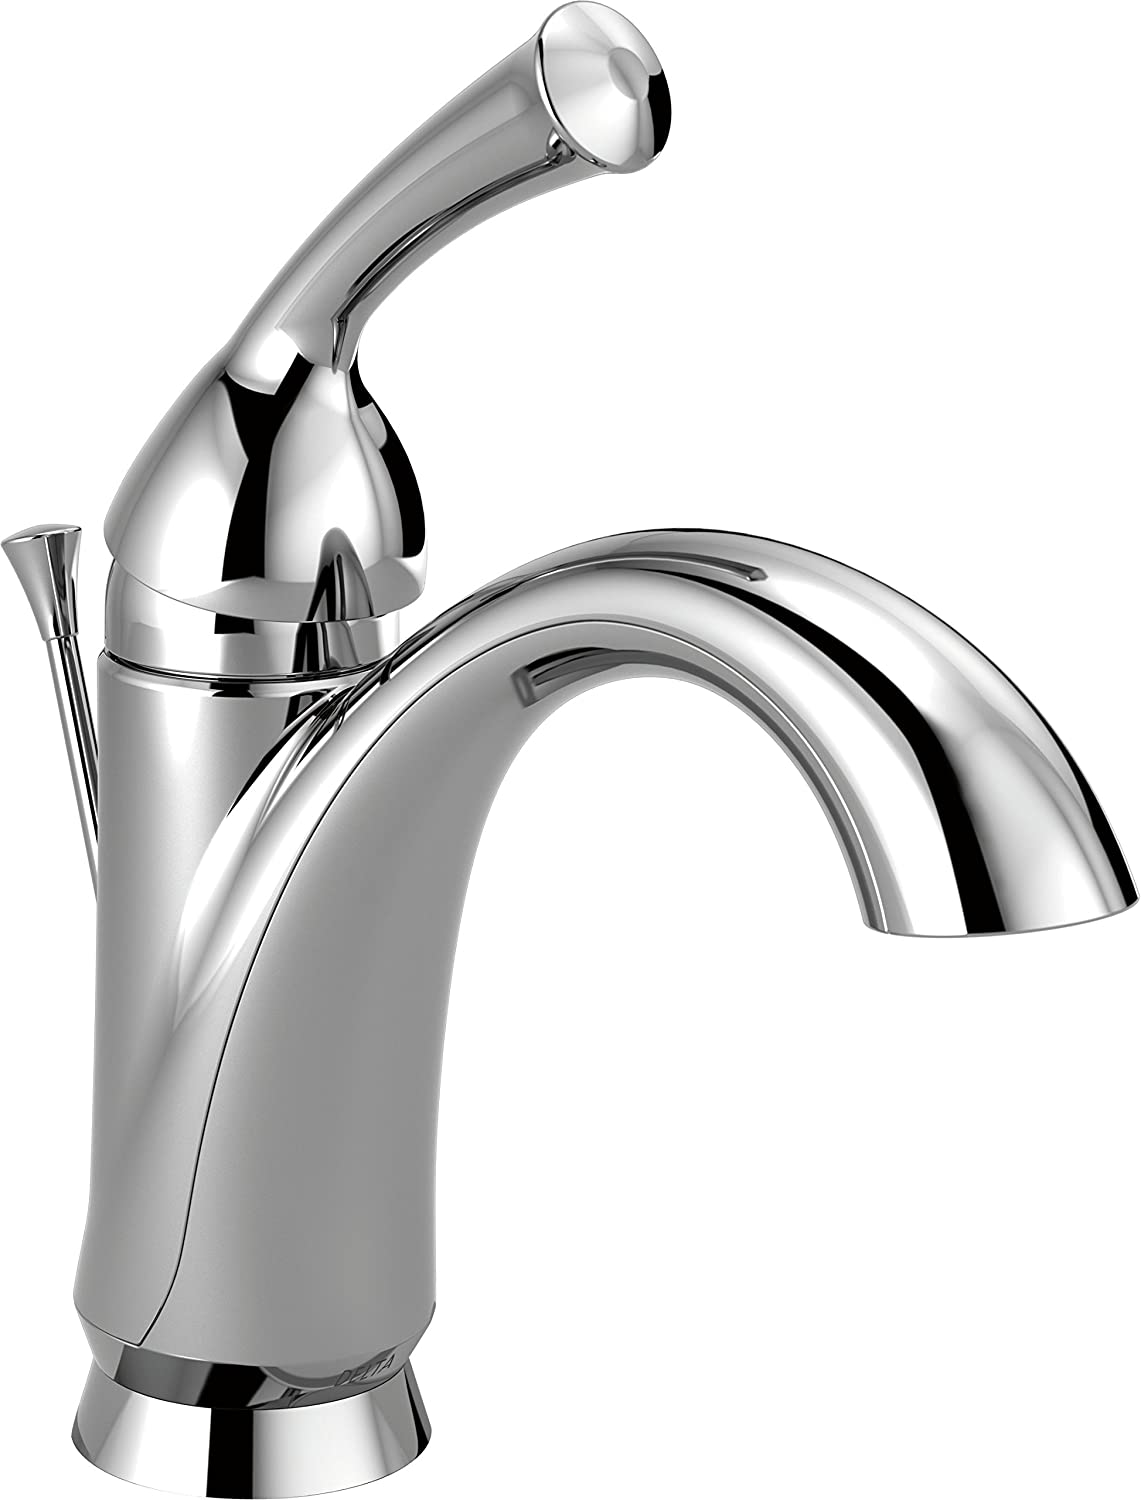 Delta Faucet Haywood Single Handle Bathroom Faucet With Diamond